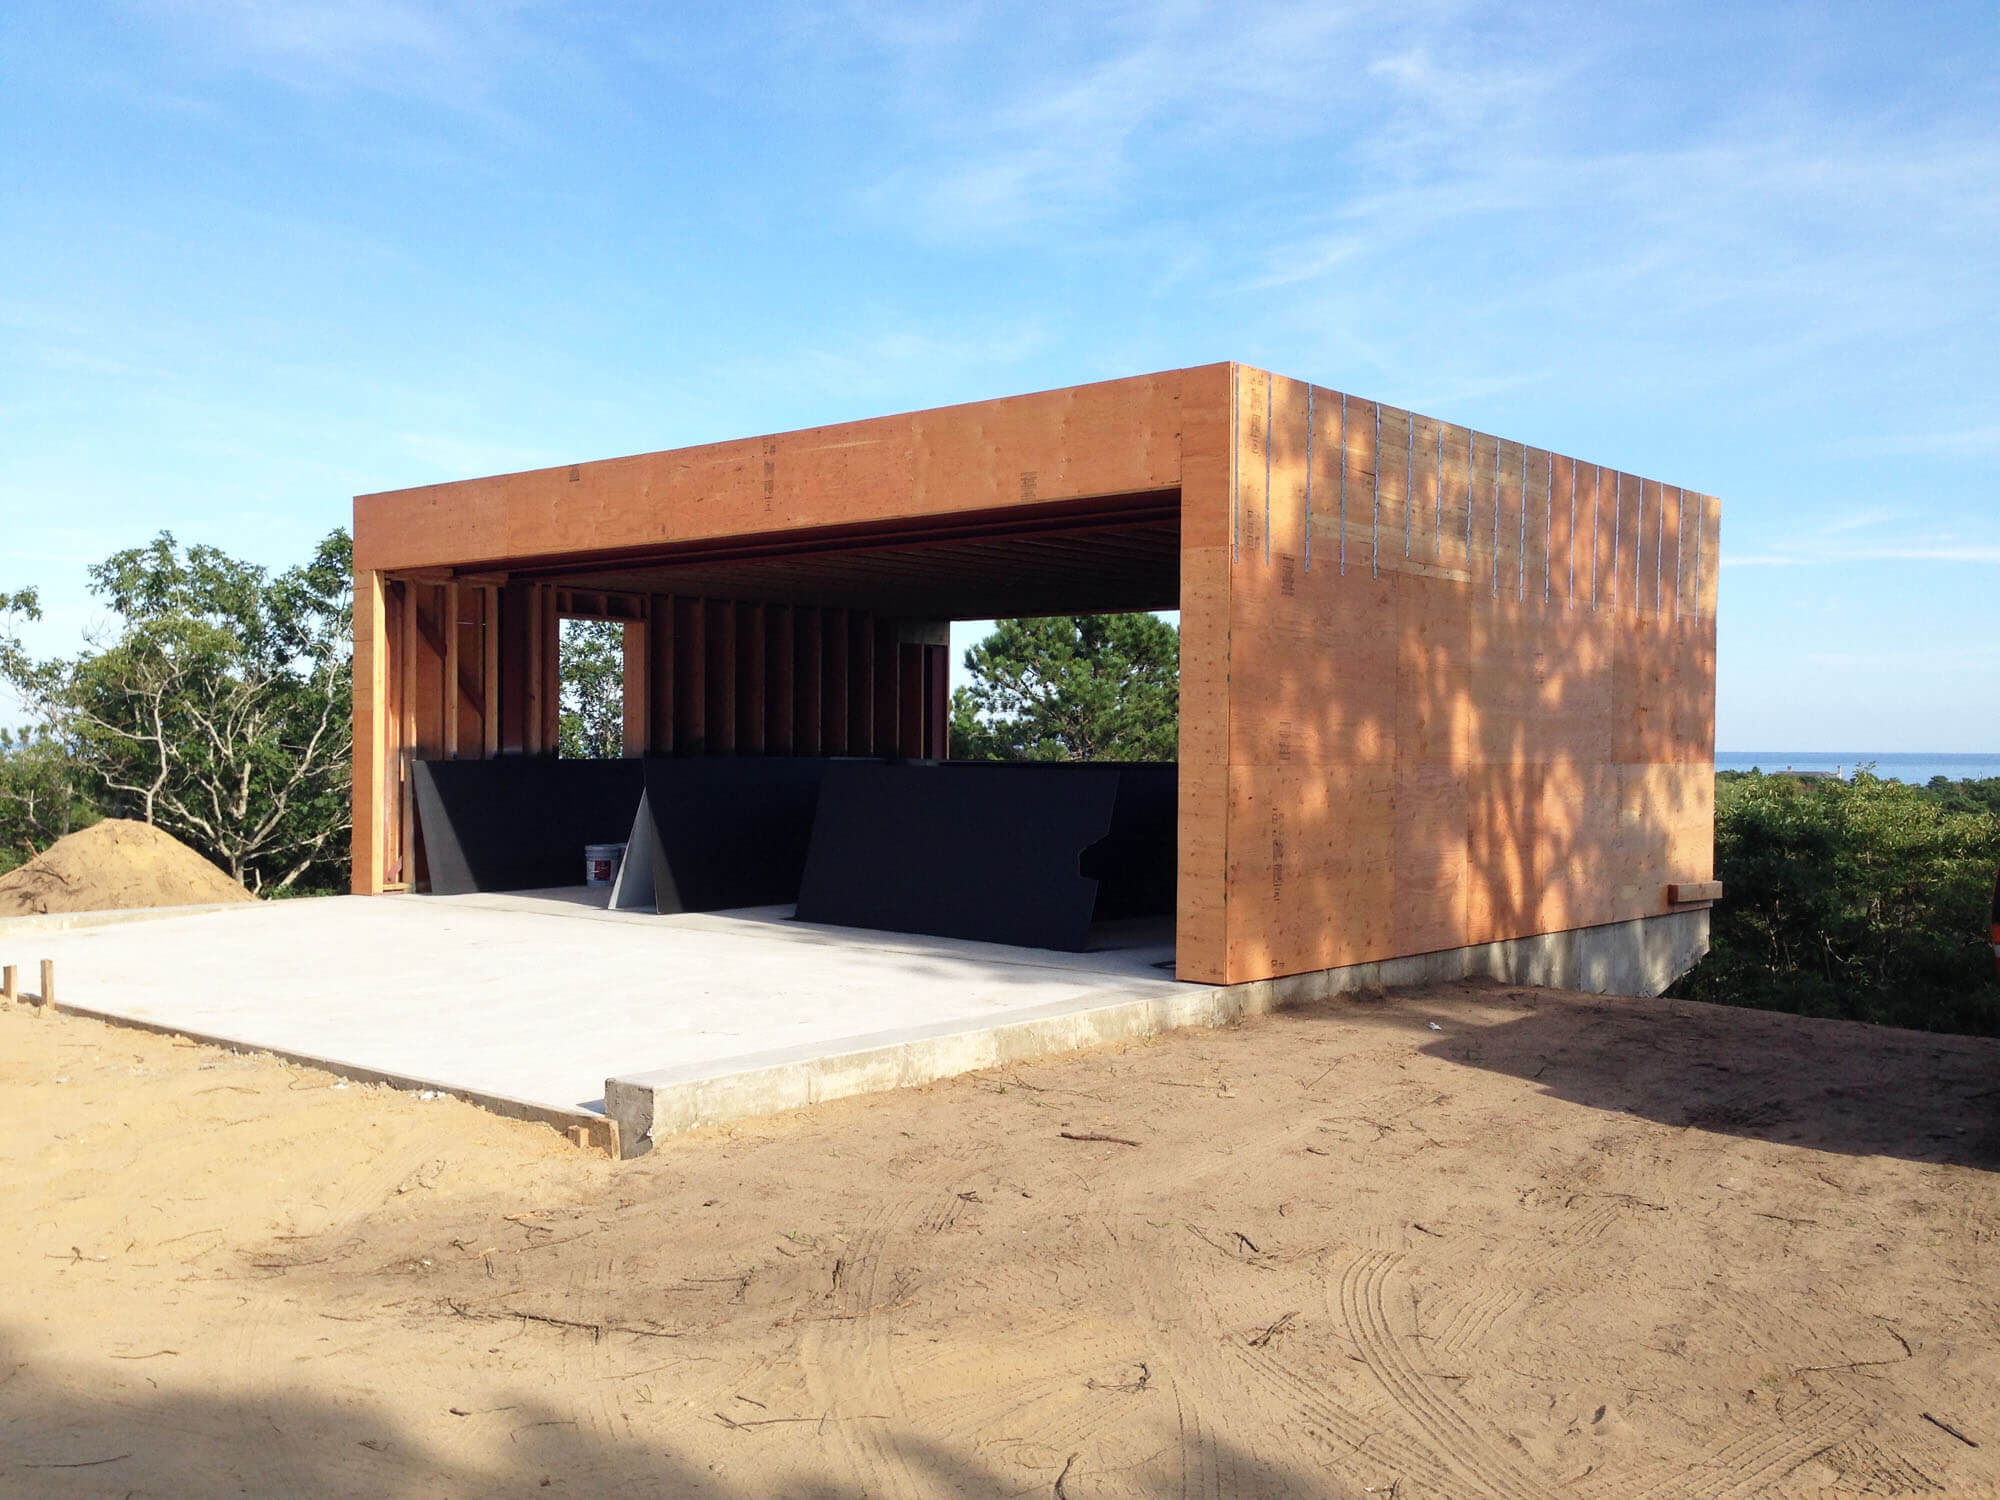 Detached Garage -   Steel framing and exterior sheathing has been completed.